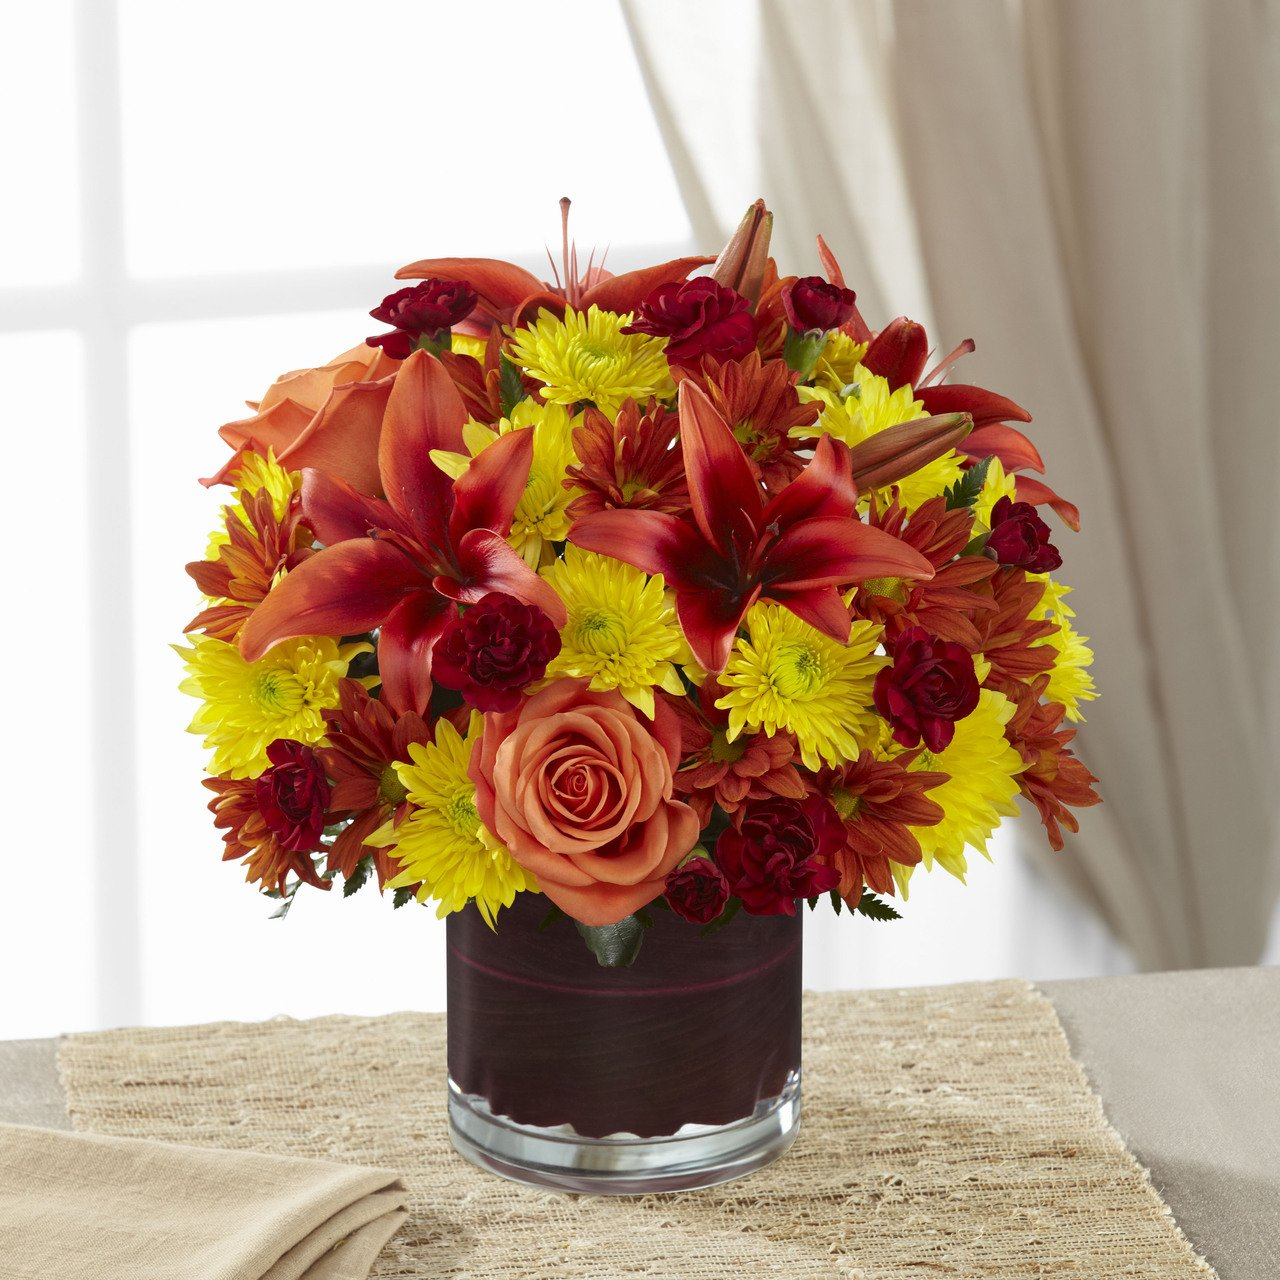 Natural Elegance Bouquet - Fresh Flowers Hand Delivered in Albuquerque Area